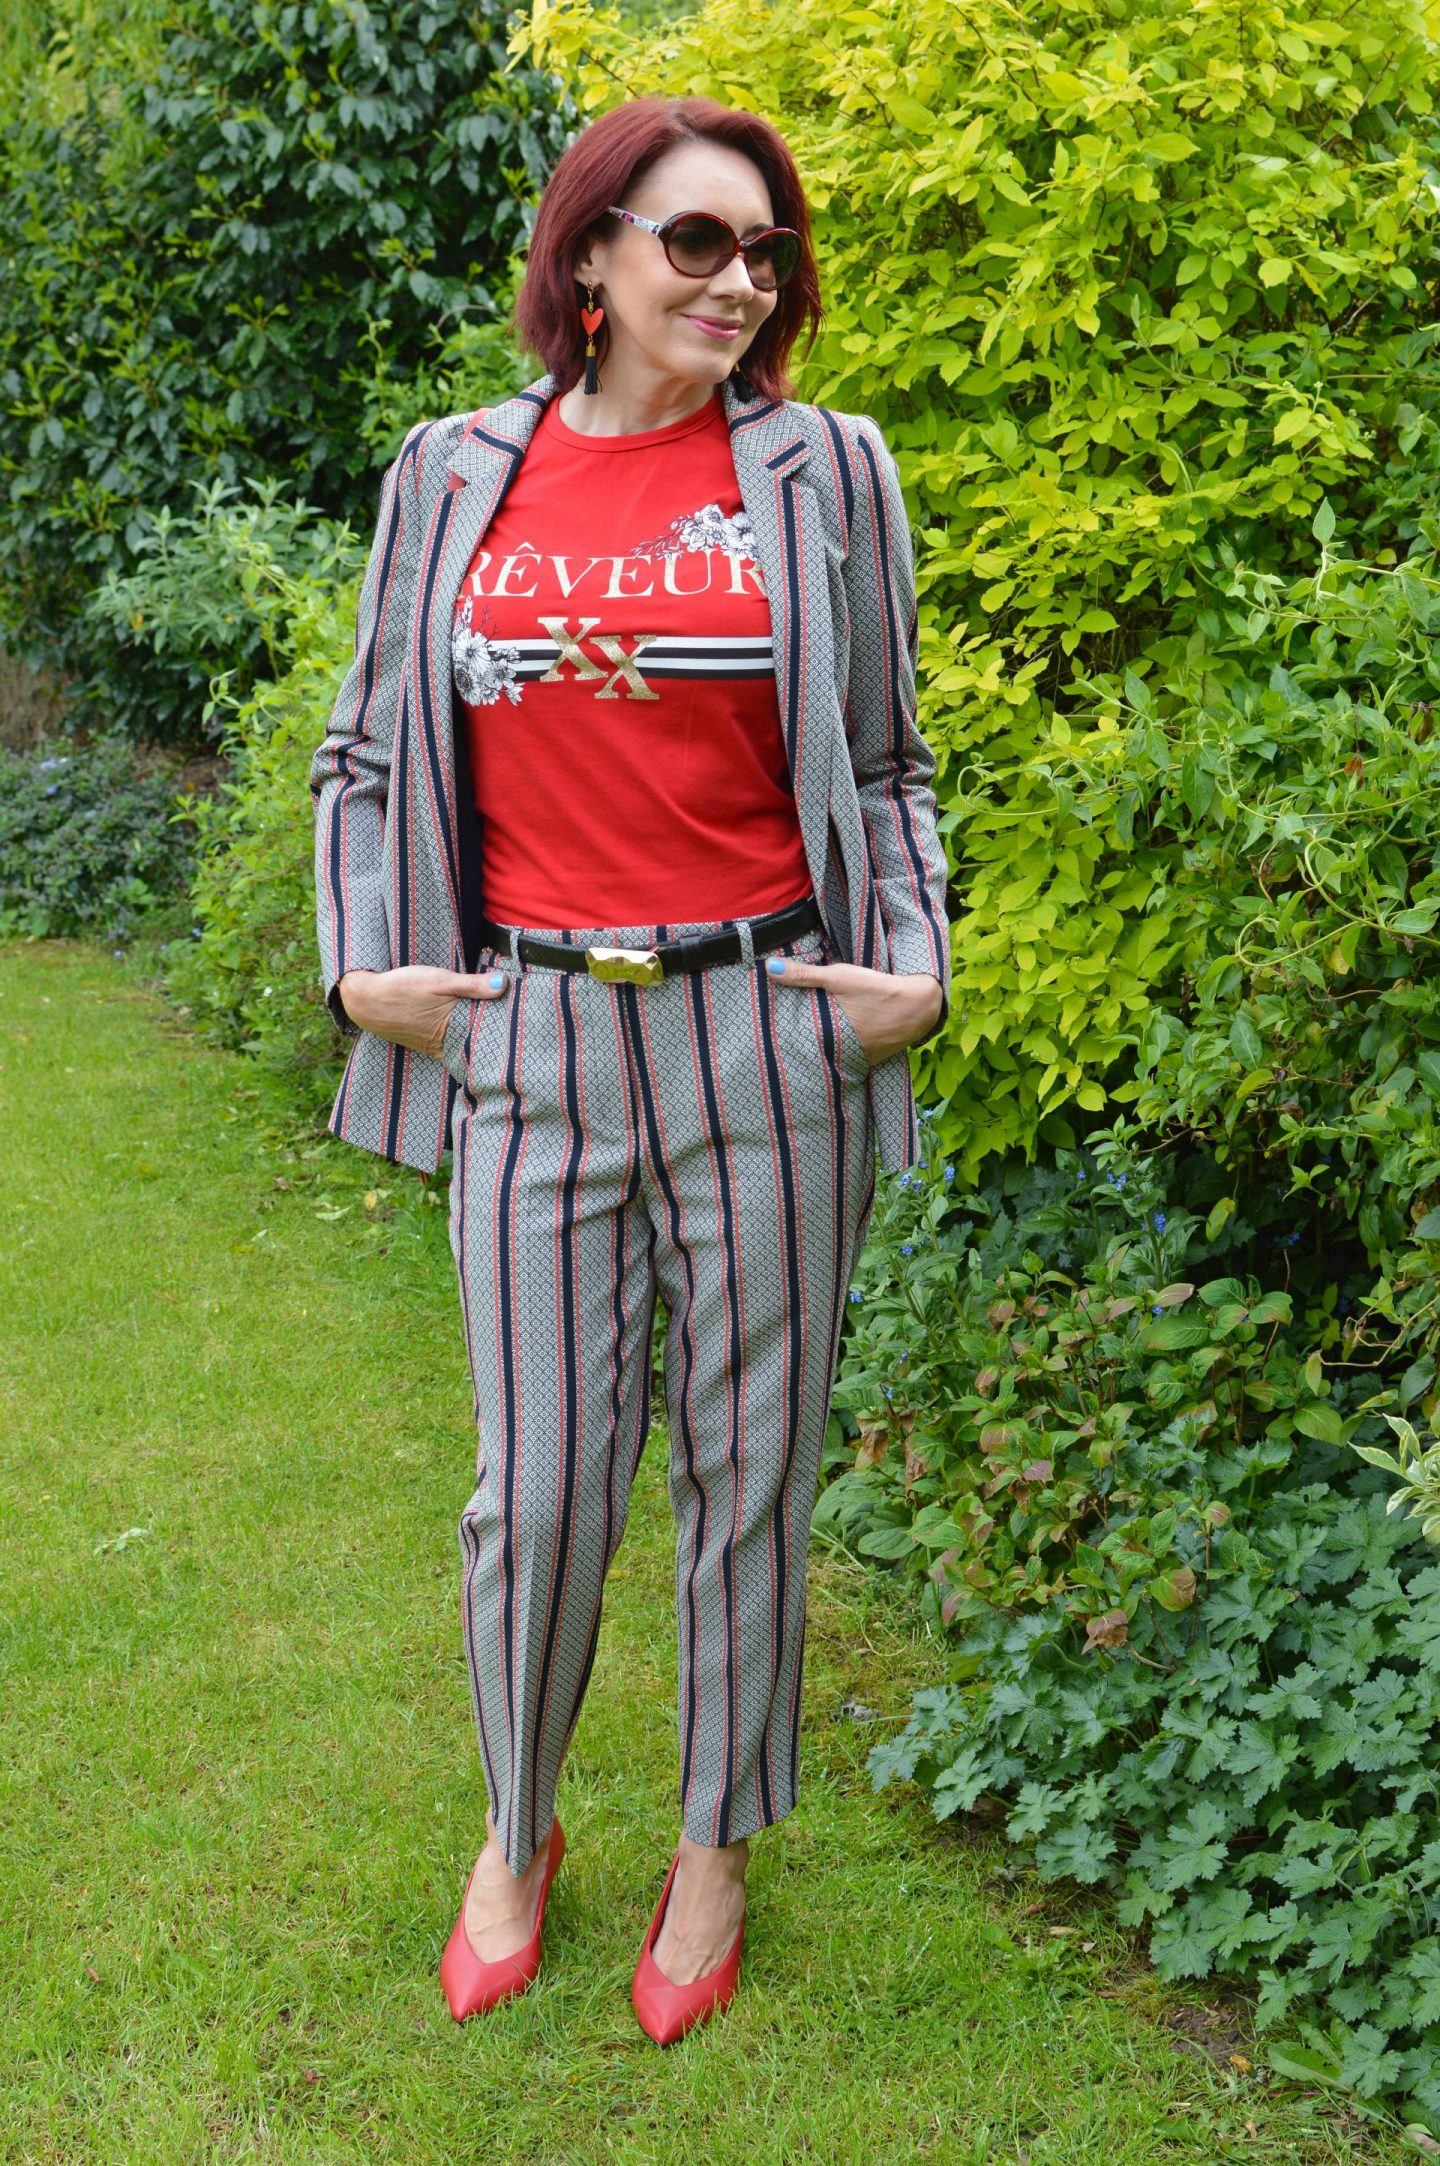 River Island trouser suit and casual T-shirt